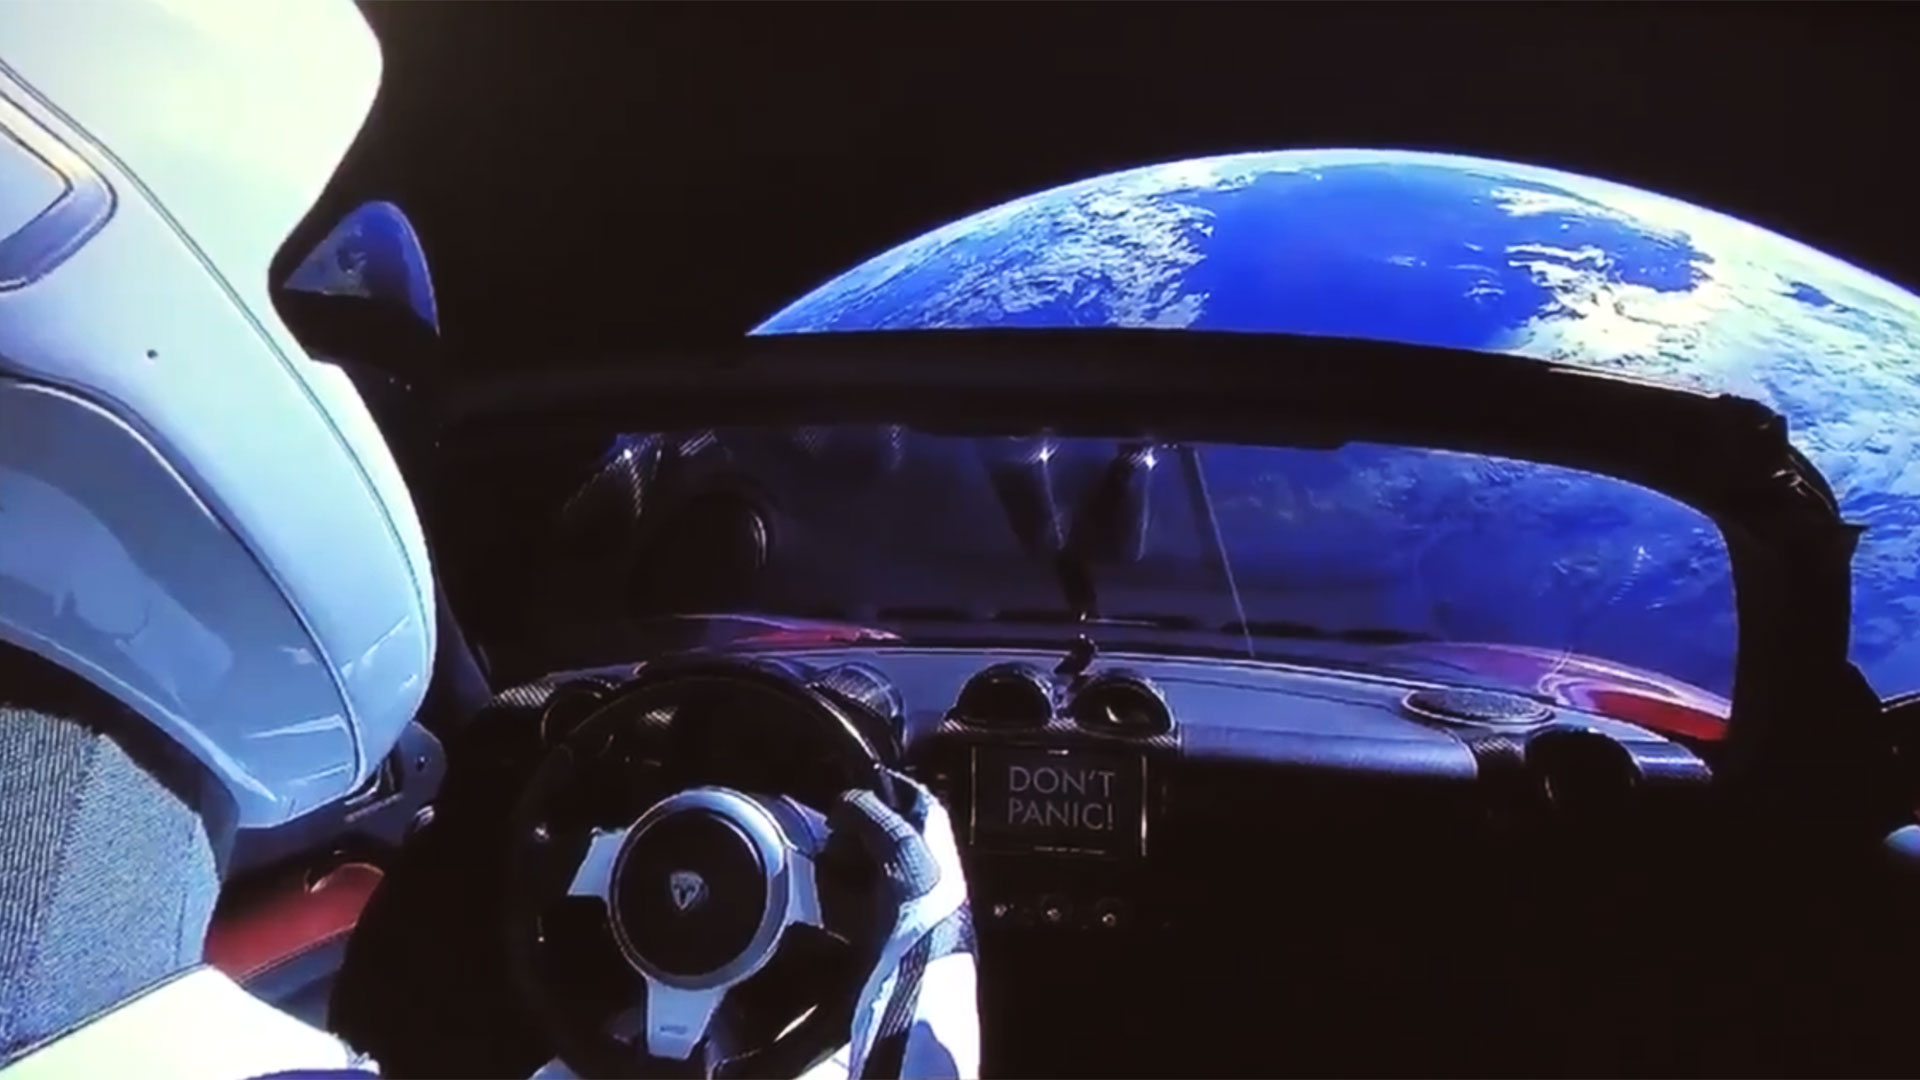 Una captura de un video que compartió Elon Musk en Twitter luego del despegue del Falcon Heavy